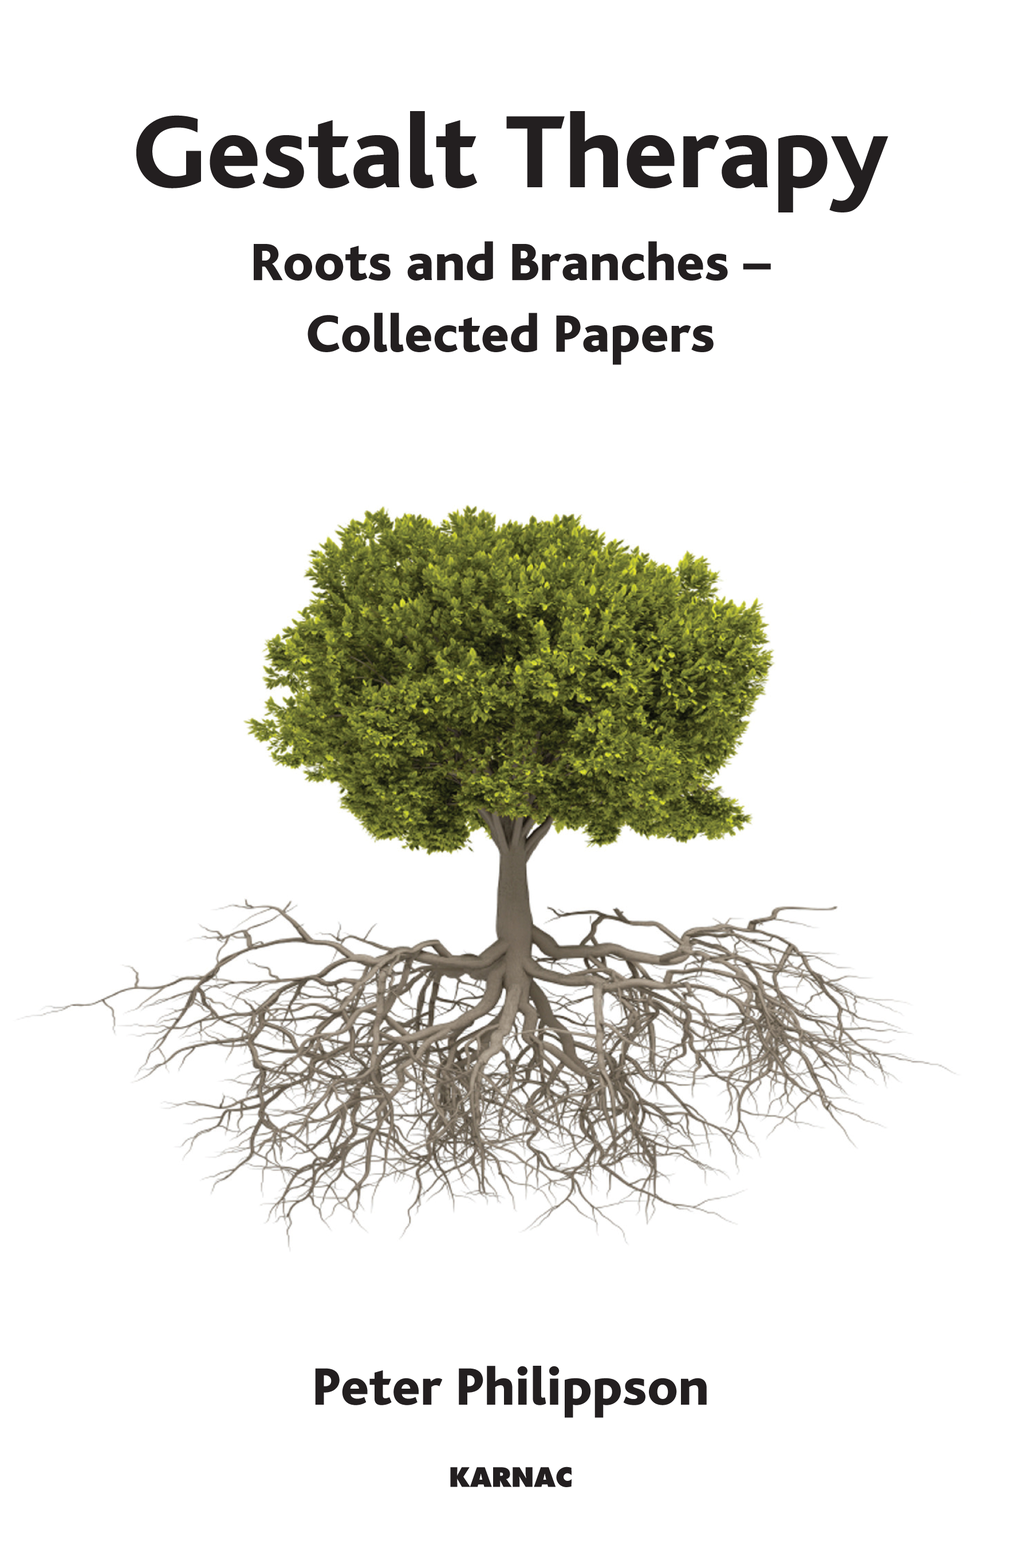 Gestalt Therapy: Roots and Branches - Collected Papers By: Peter Philippson